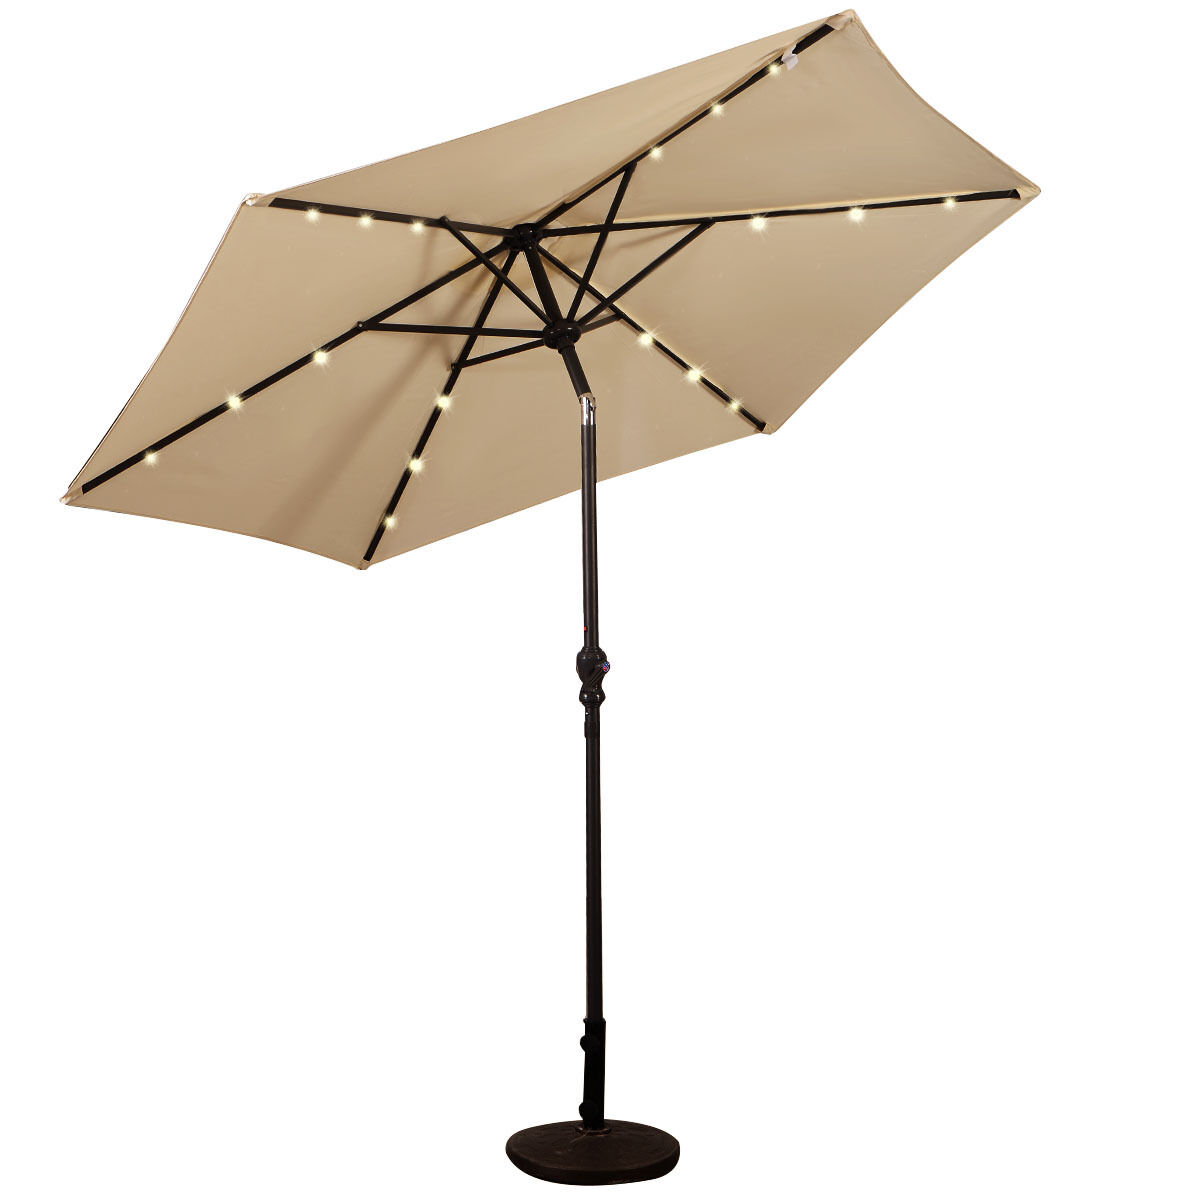 9FT-Patio-Solar-Umbrella-LED-Patio-Market-Steel-Tilt-W-Crank-Outdoor-GOPLUS-New thumbnail 6